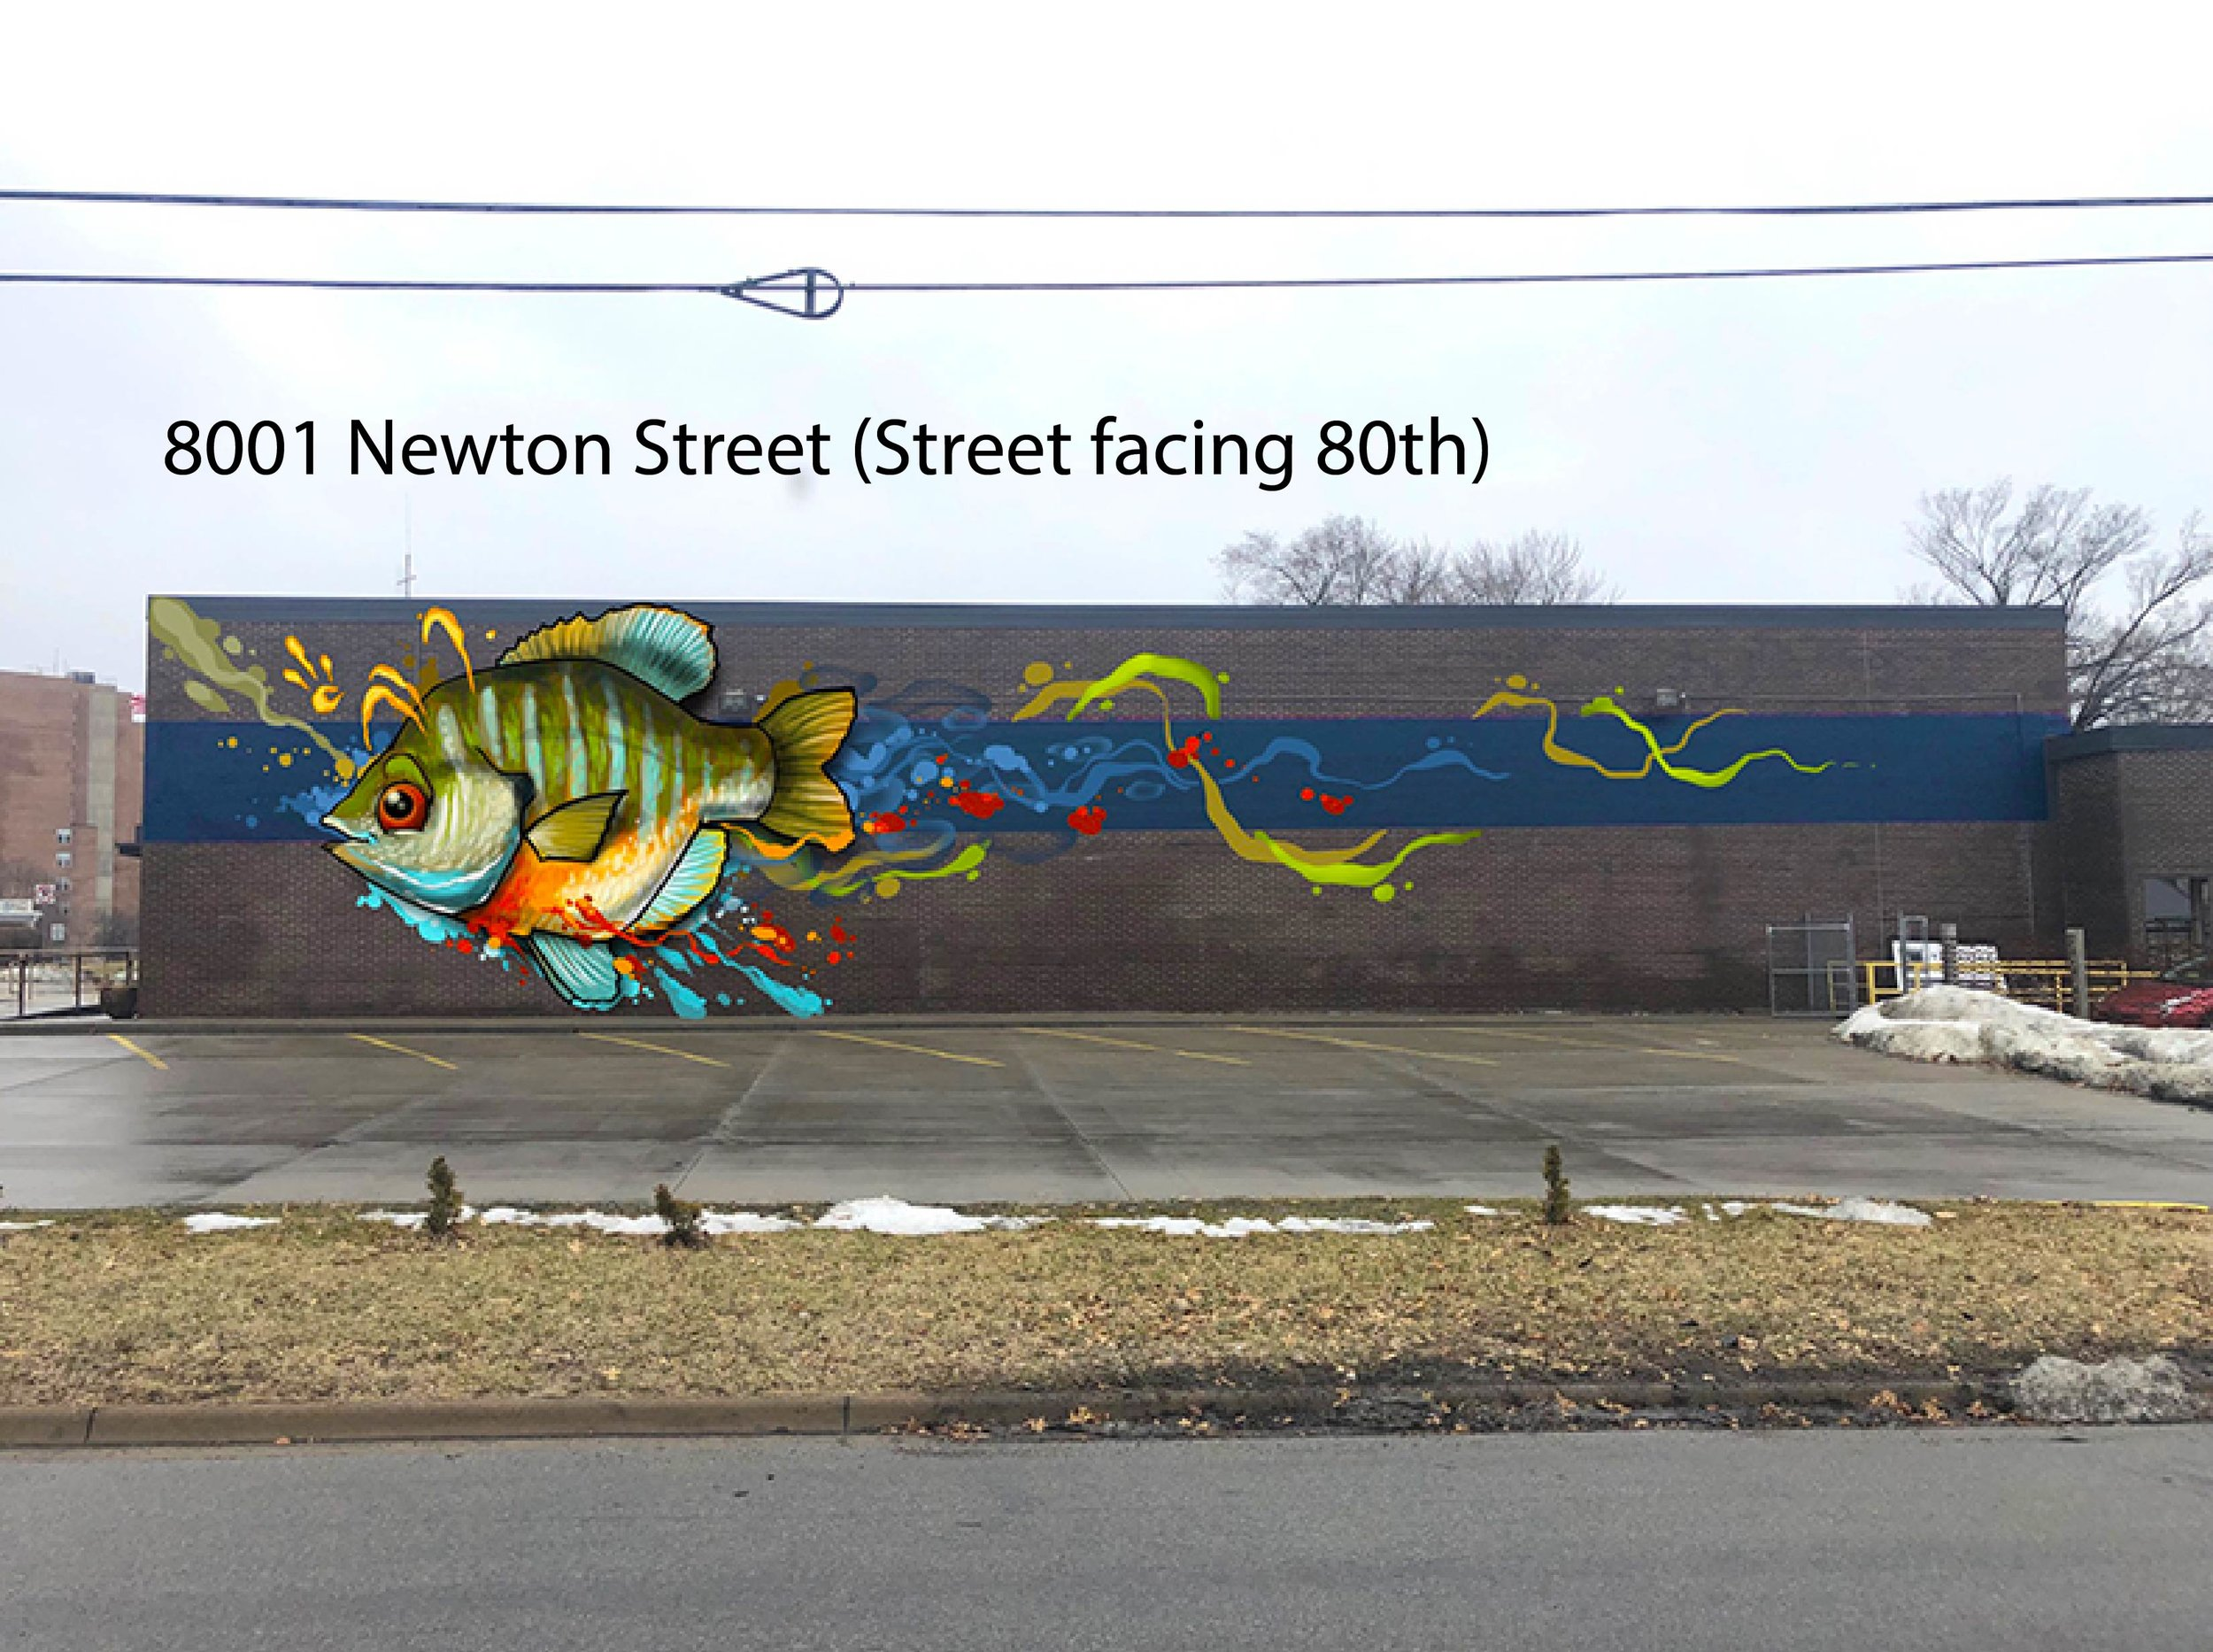 The proposed mural on the side of InterUrban ArtHouse at the corner of 80th/Conser depicts a colorful Bluegill fish which is one of the most common fish in the state of Kansas!